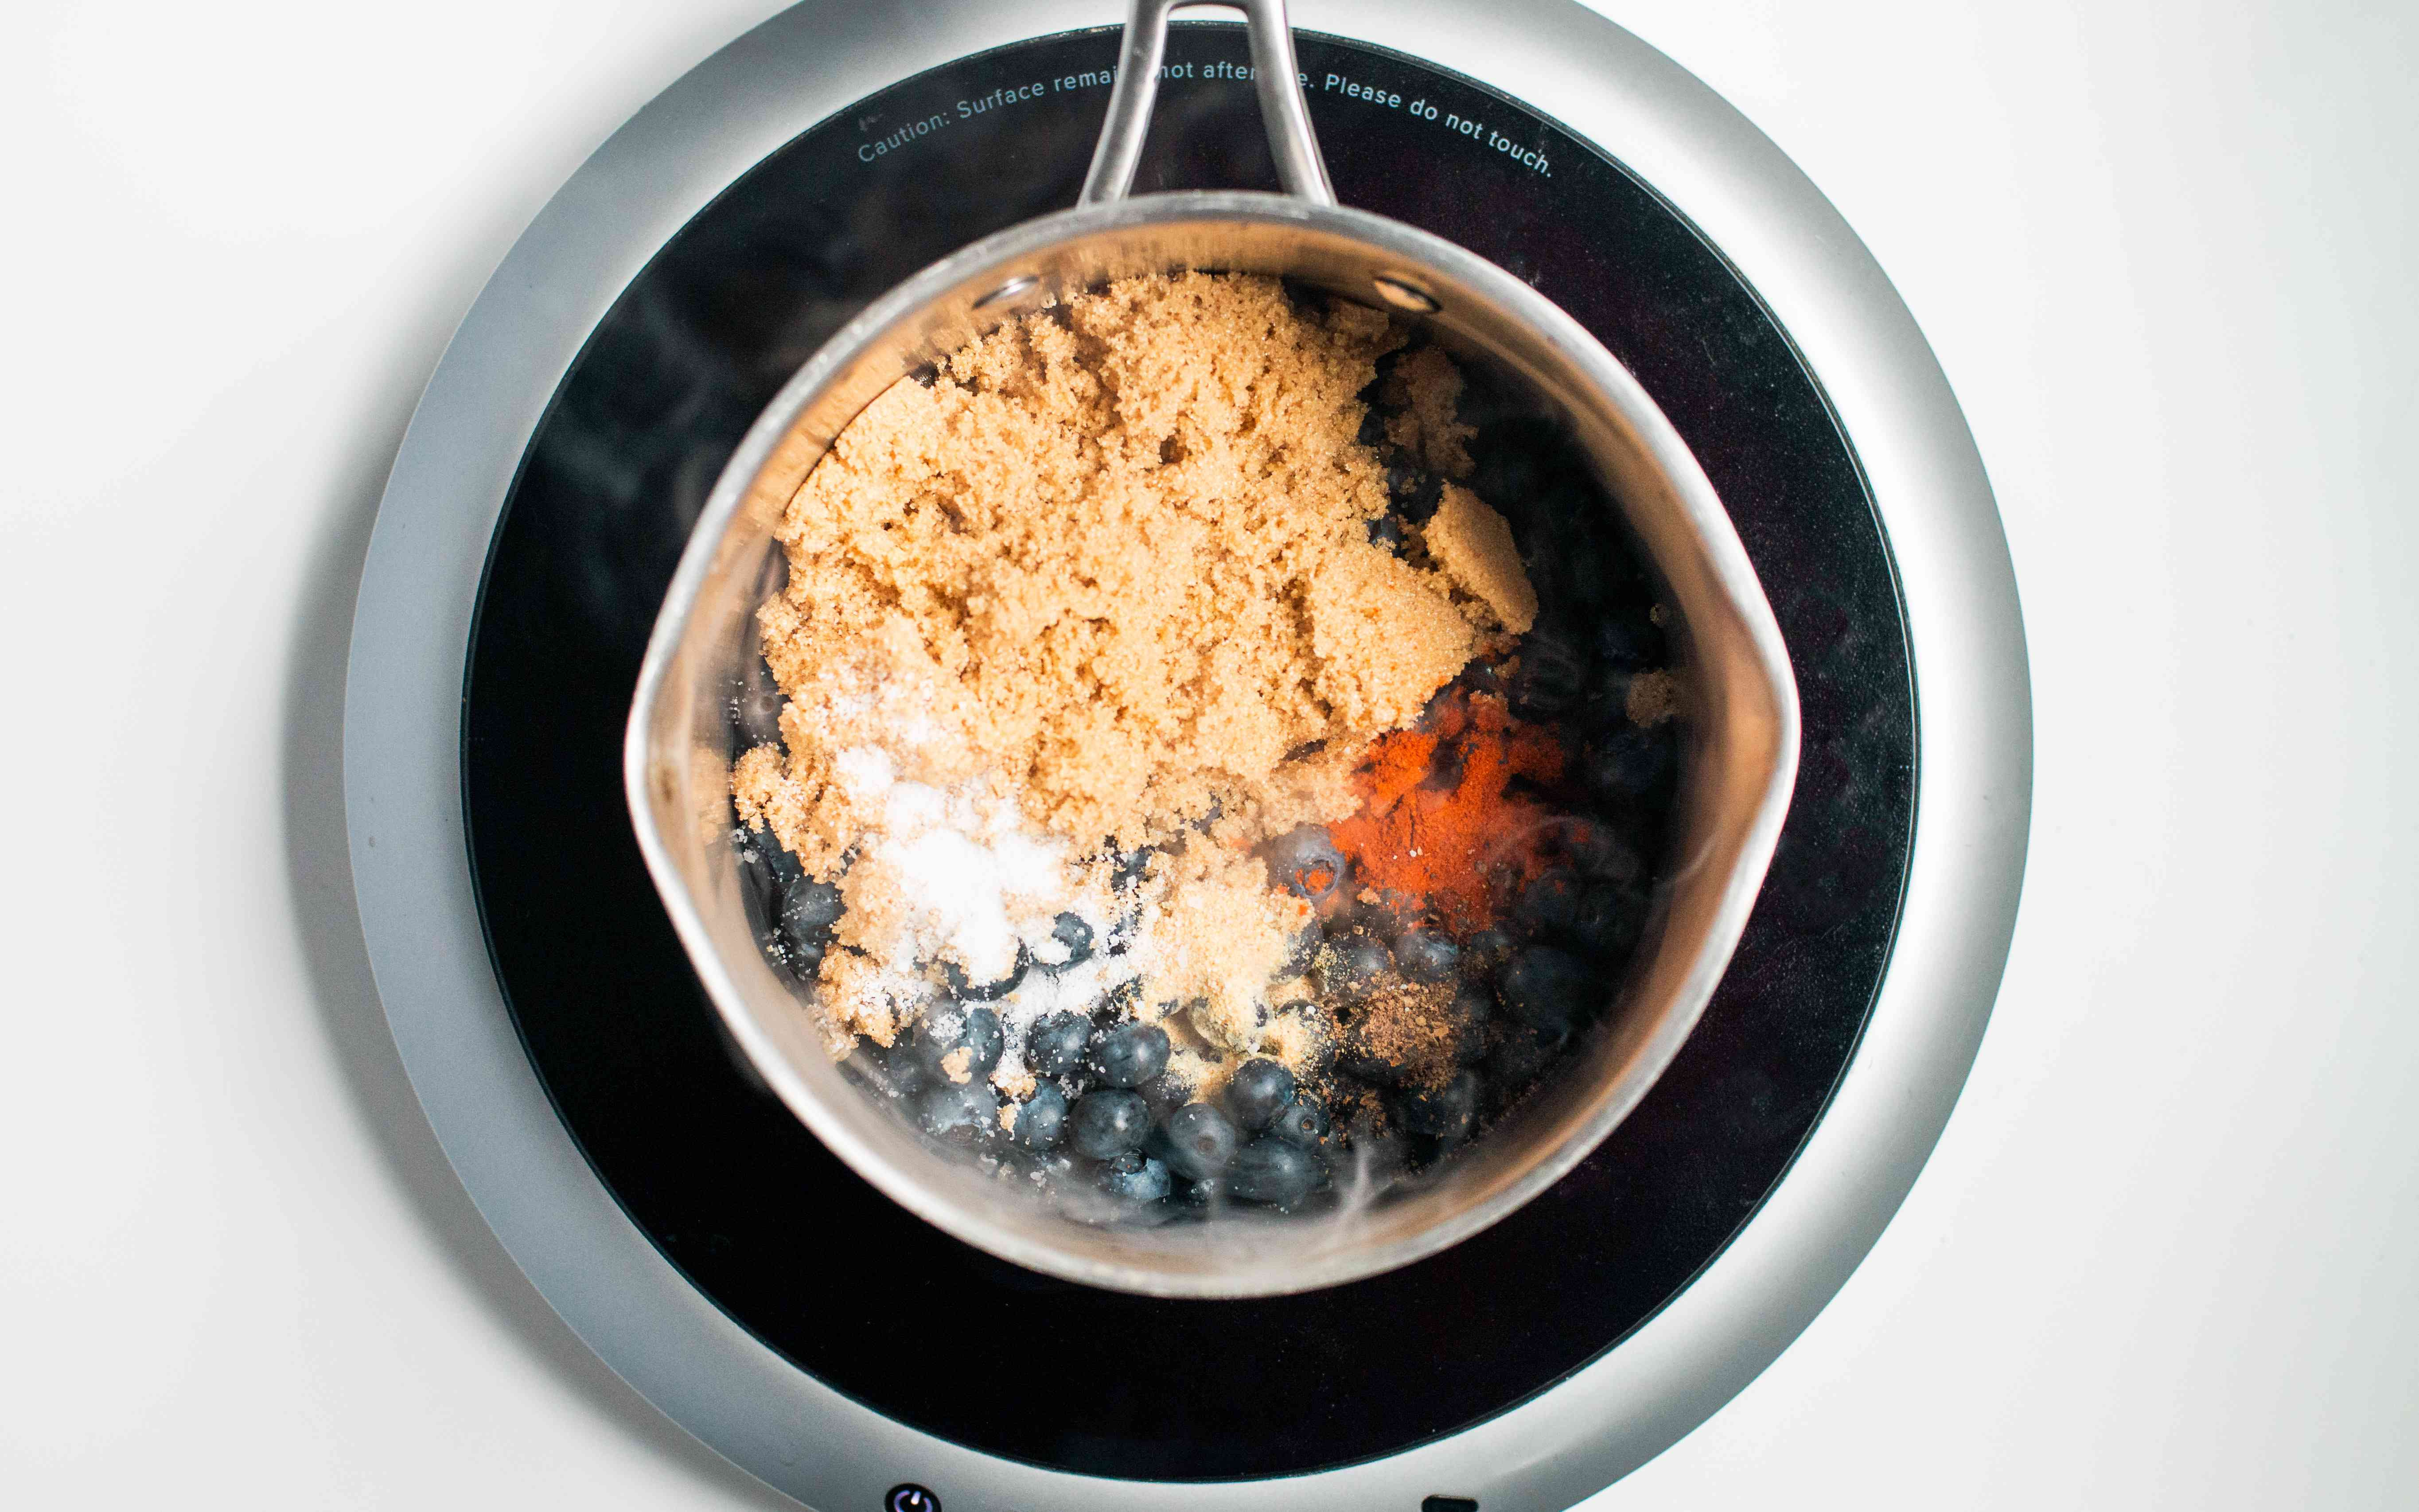 Combine blueberries, brown sugar and other ingredients